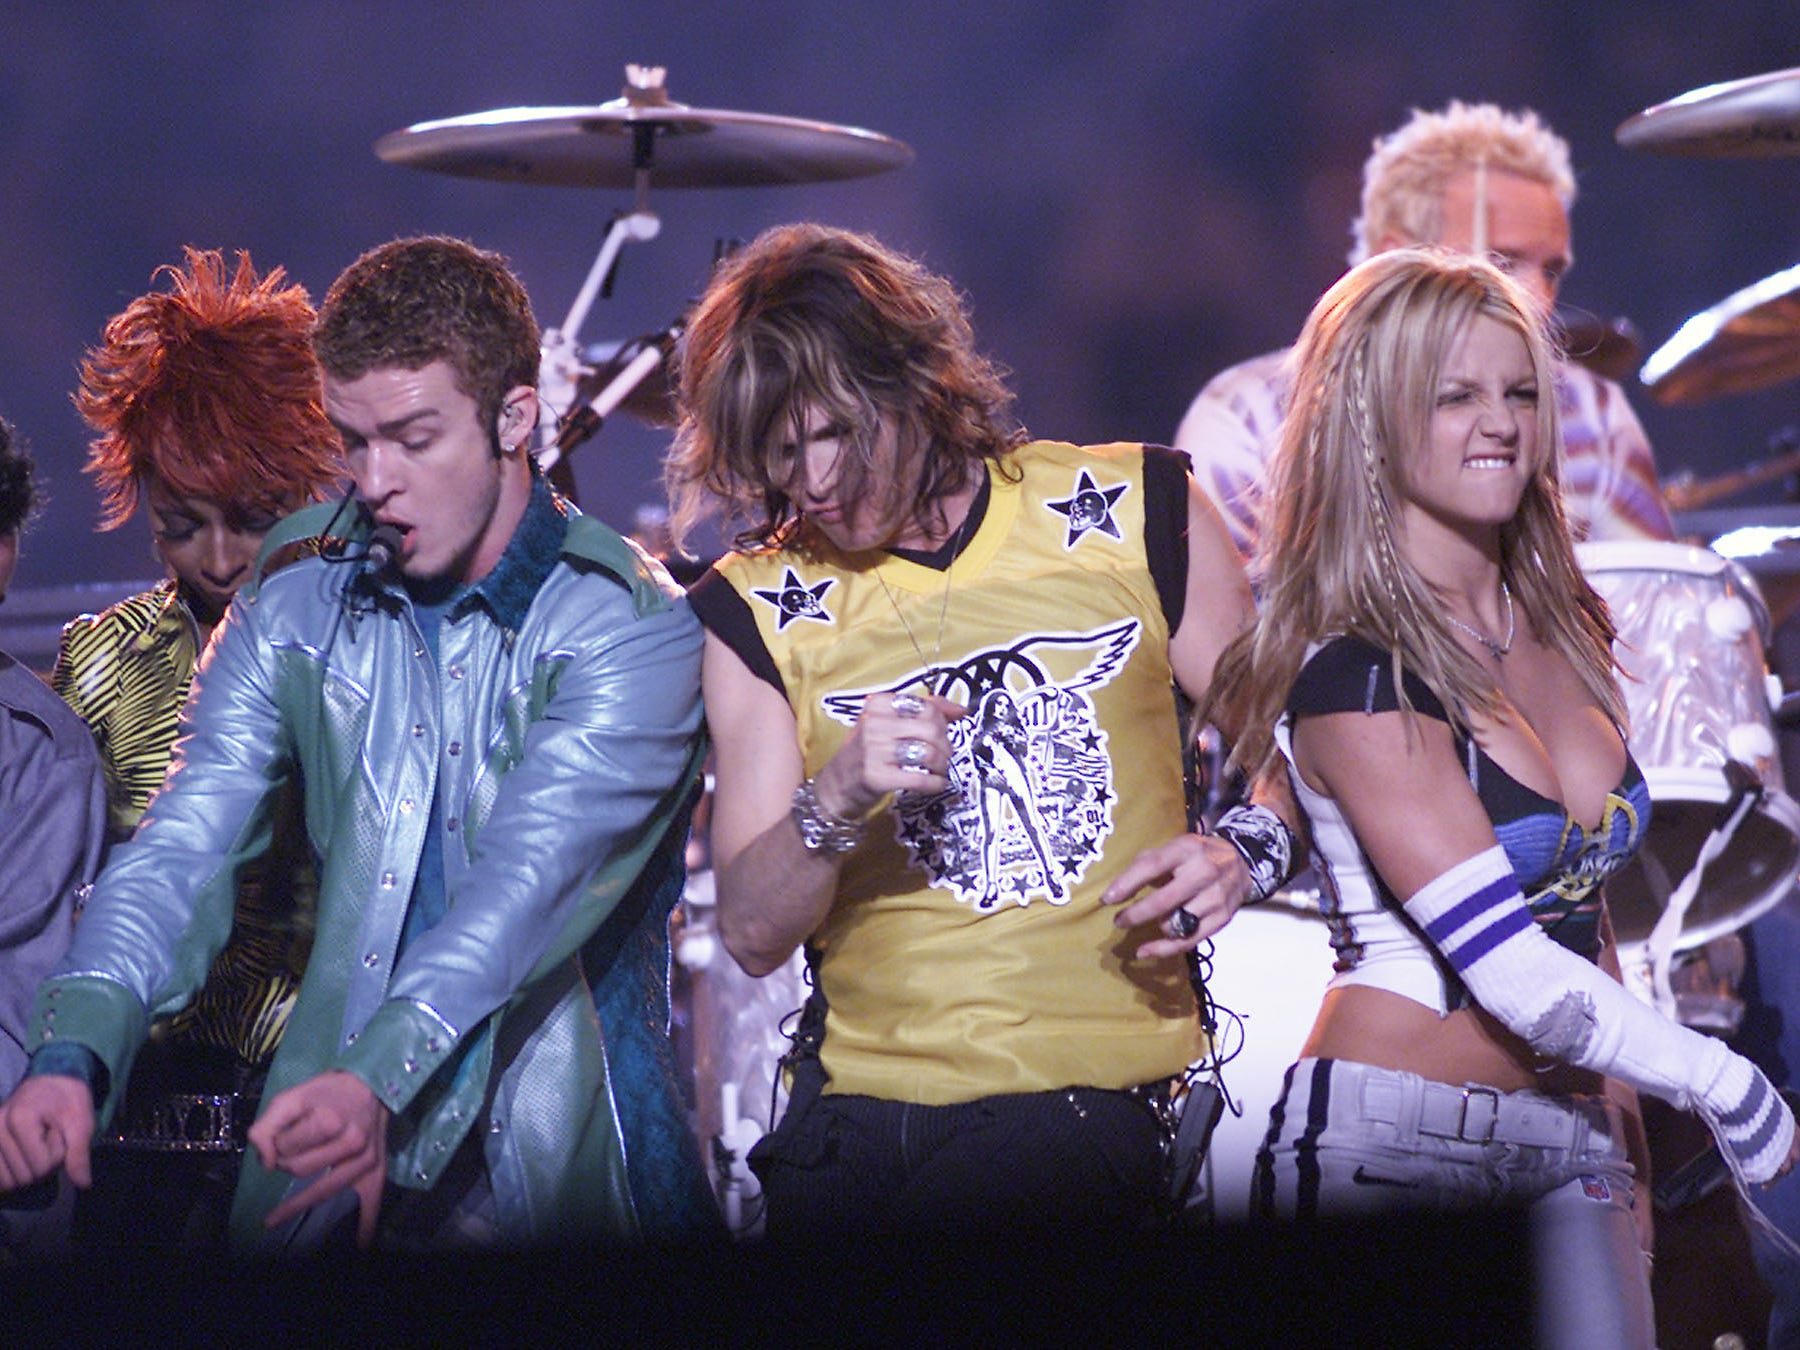 (l to r)  Mary J. Blige, Justin Timberlake, Steven Tyler, and Britney Spears on stage during MTV's Superbowl halftime show at Raymond James Stadium in Tampa, Fla..  1/28/01  Photo by Scott Gries/ImageDirect